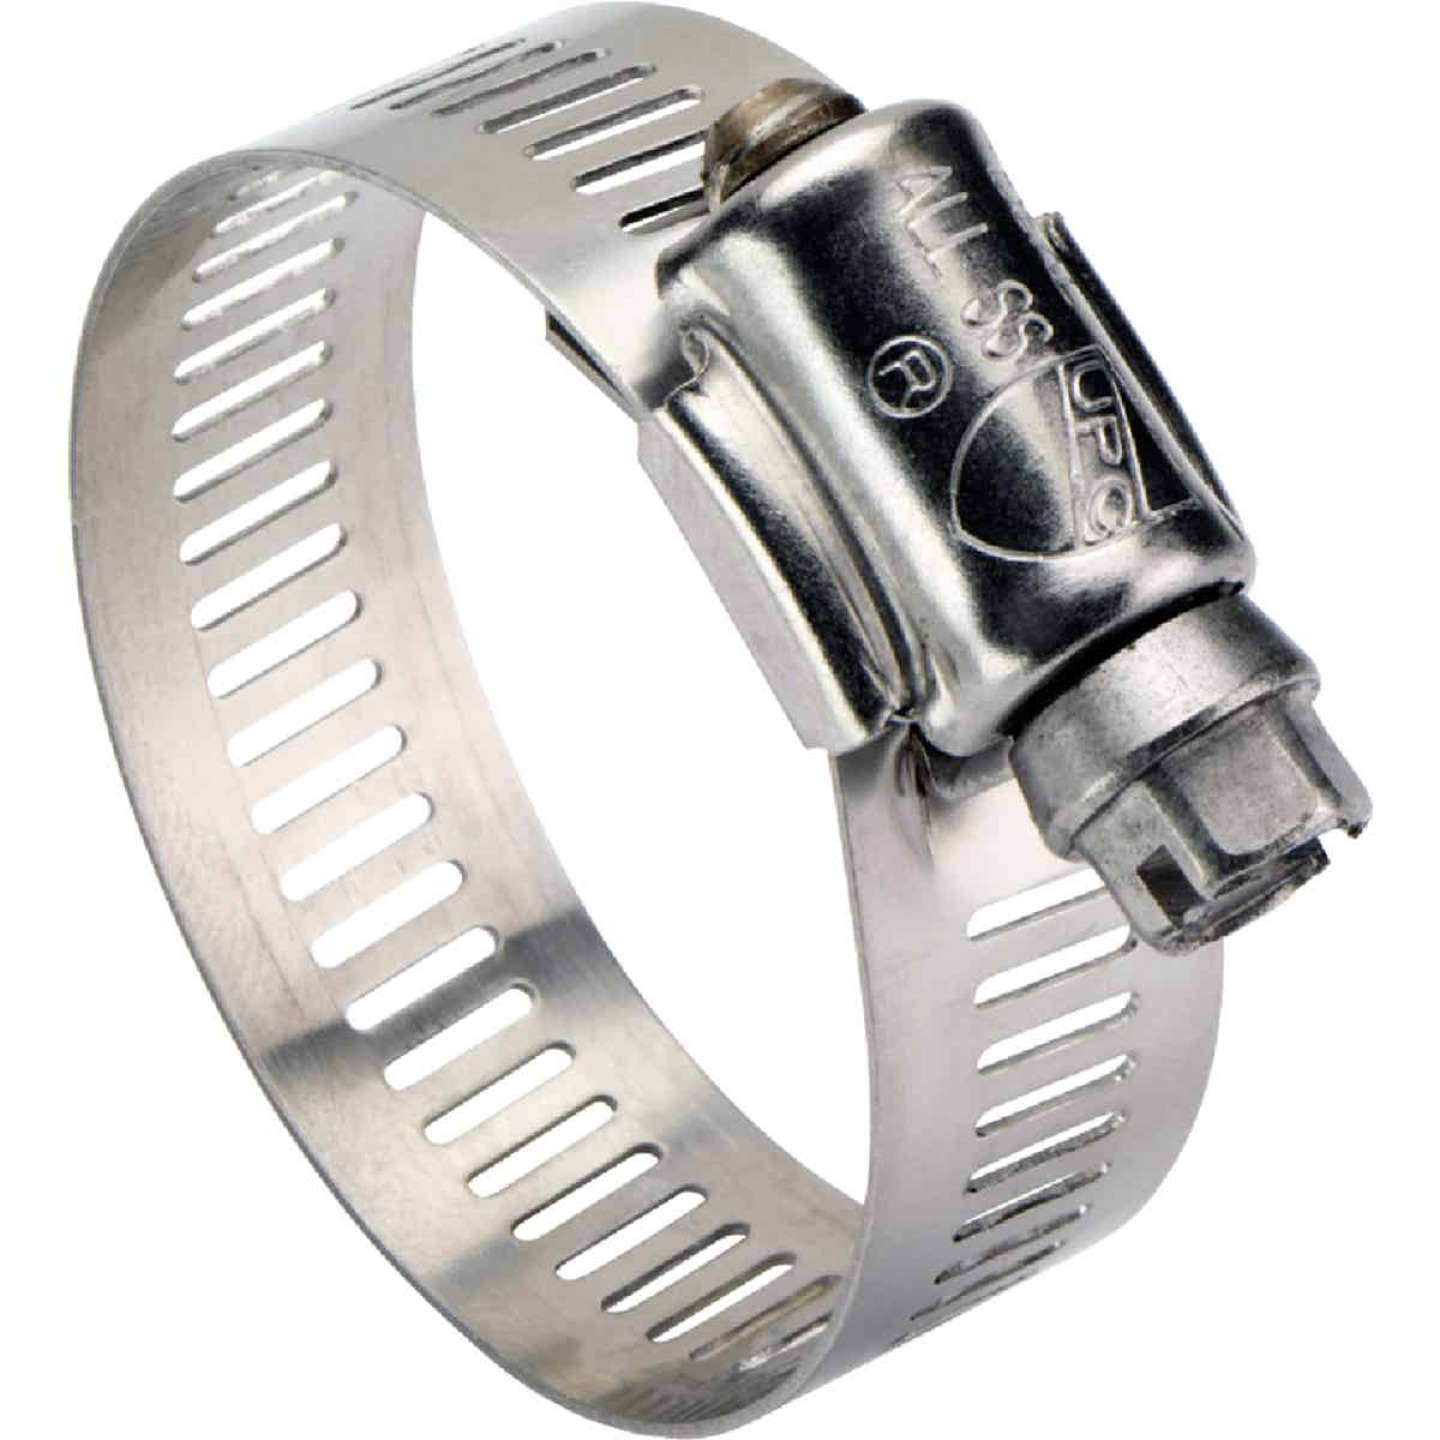 Ideal 1 In. - 2 In. All Stainless Steel Marine-Grade Hose Clamp Image 1